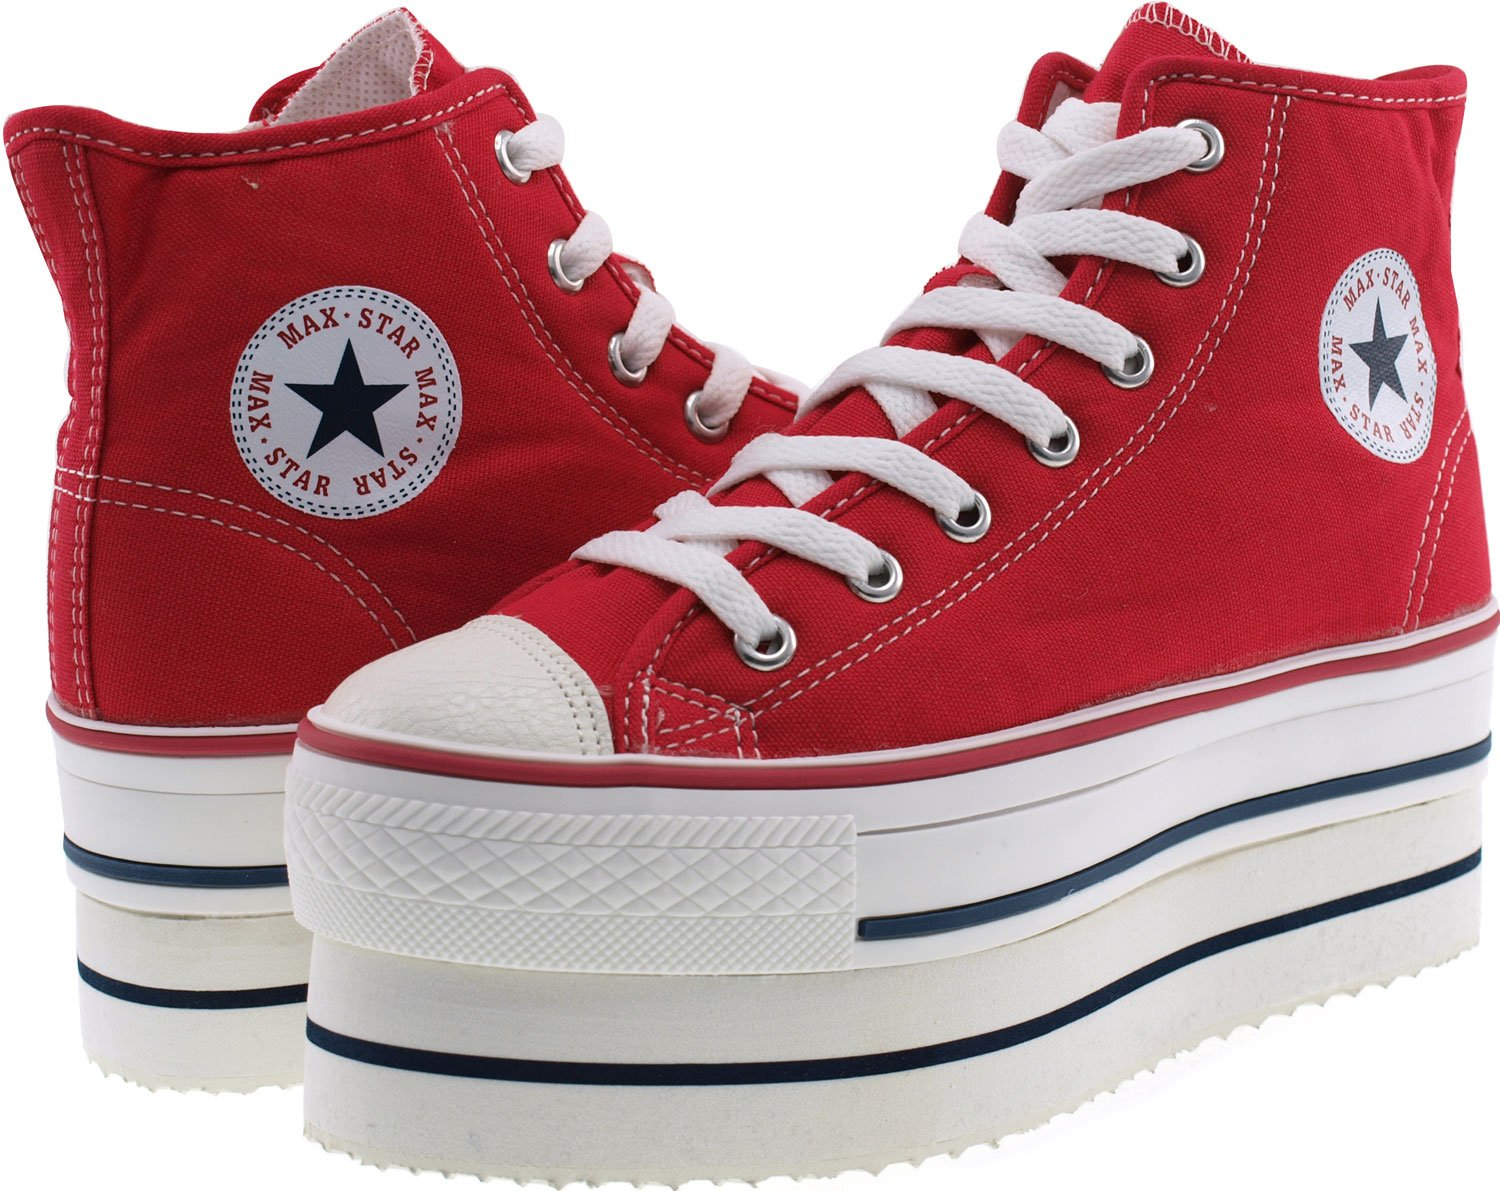 CN9 8 Holes Double Platform Denim Studed Taller Insole High B(M) Top Sneakers B00CLM79LI 7 B(M) High US|Red 25732c